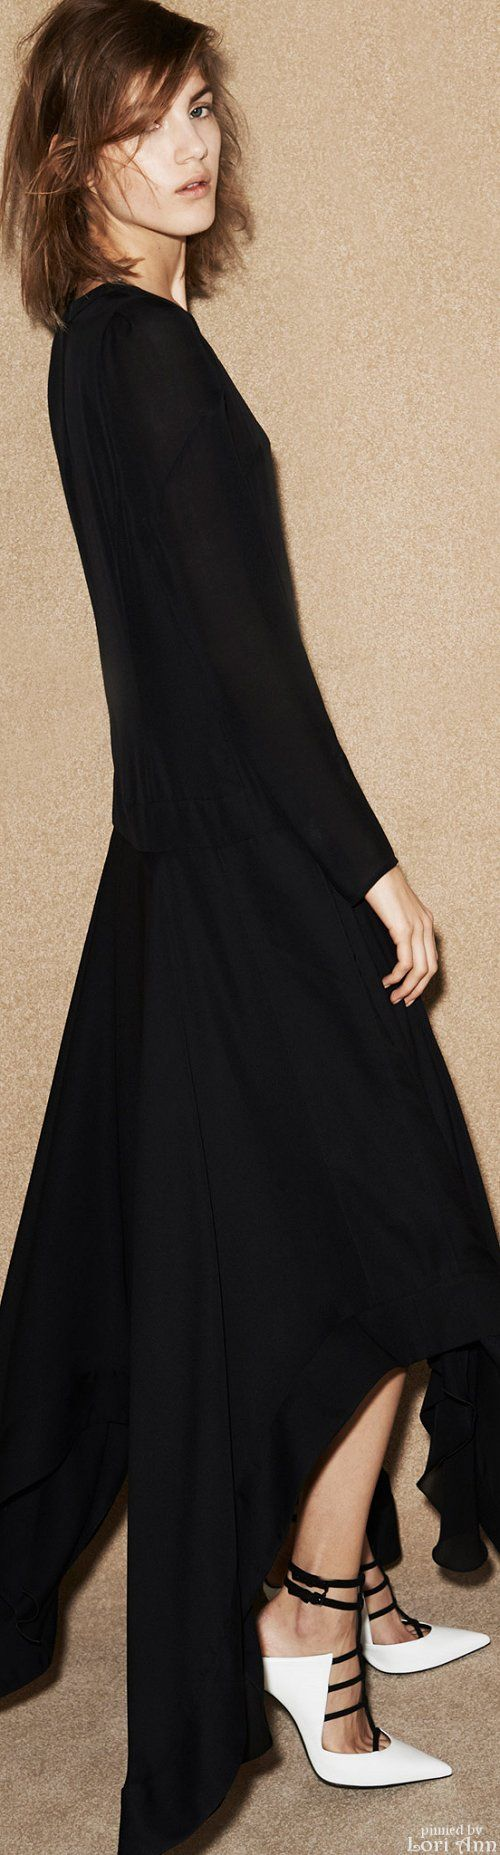 Barbara Bui Pre-Fall  2015    love the lines in this dress